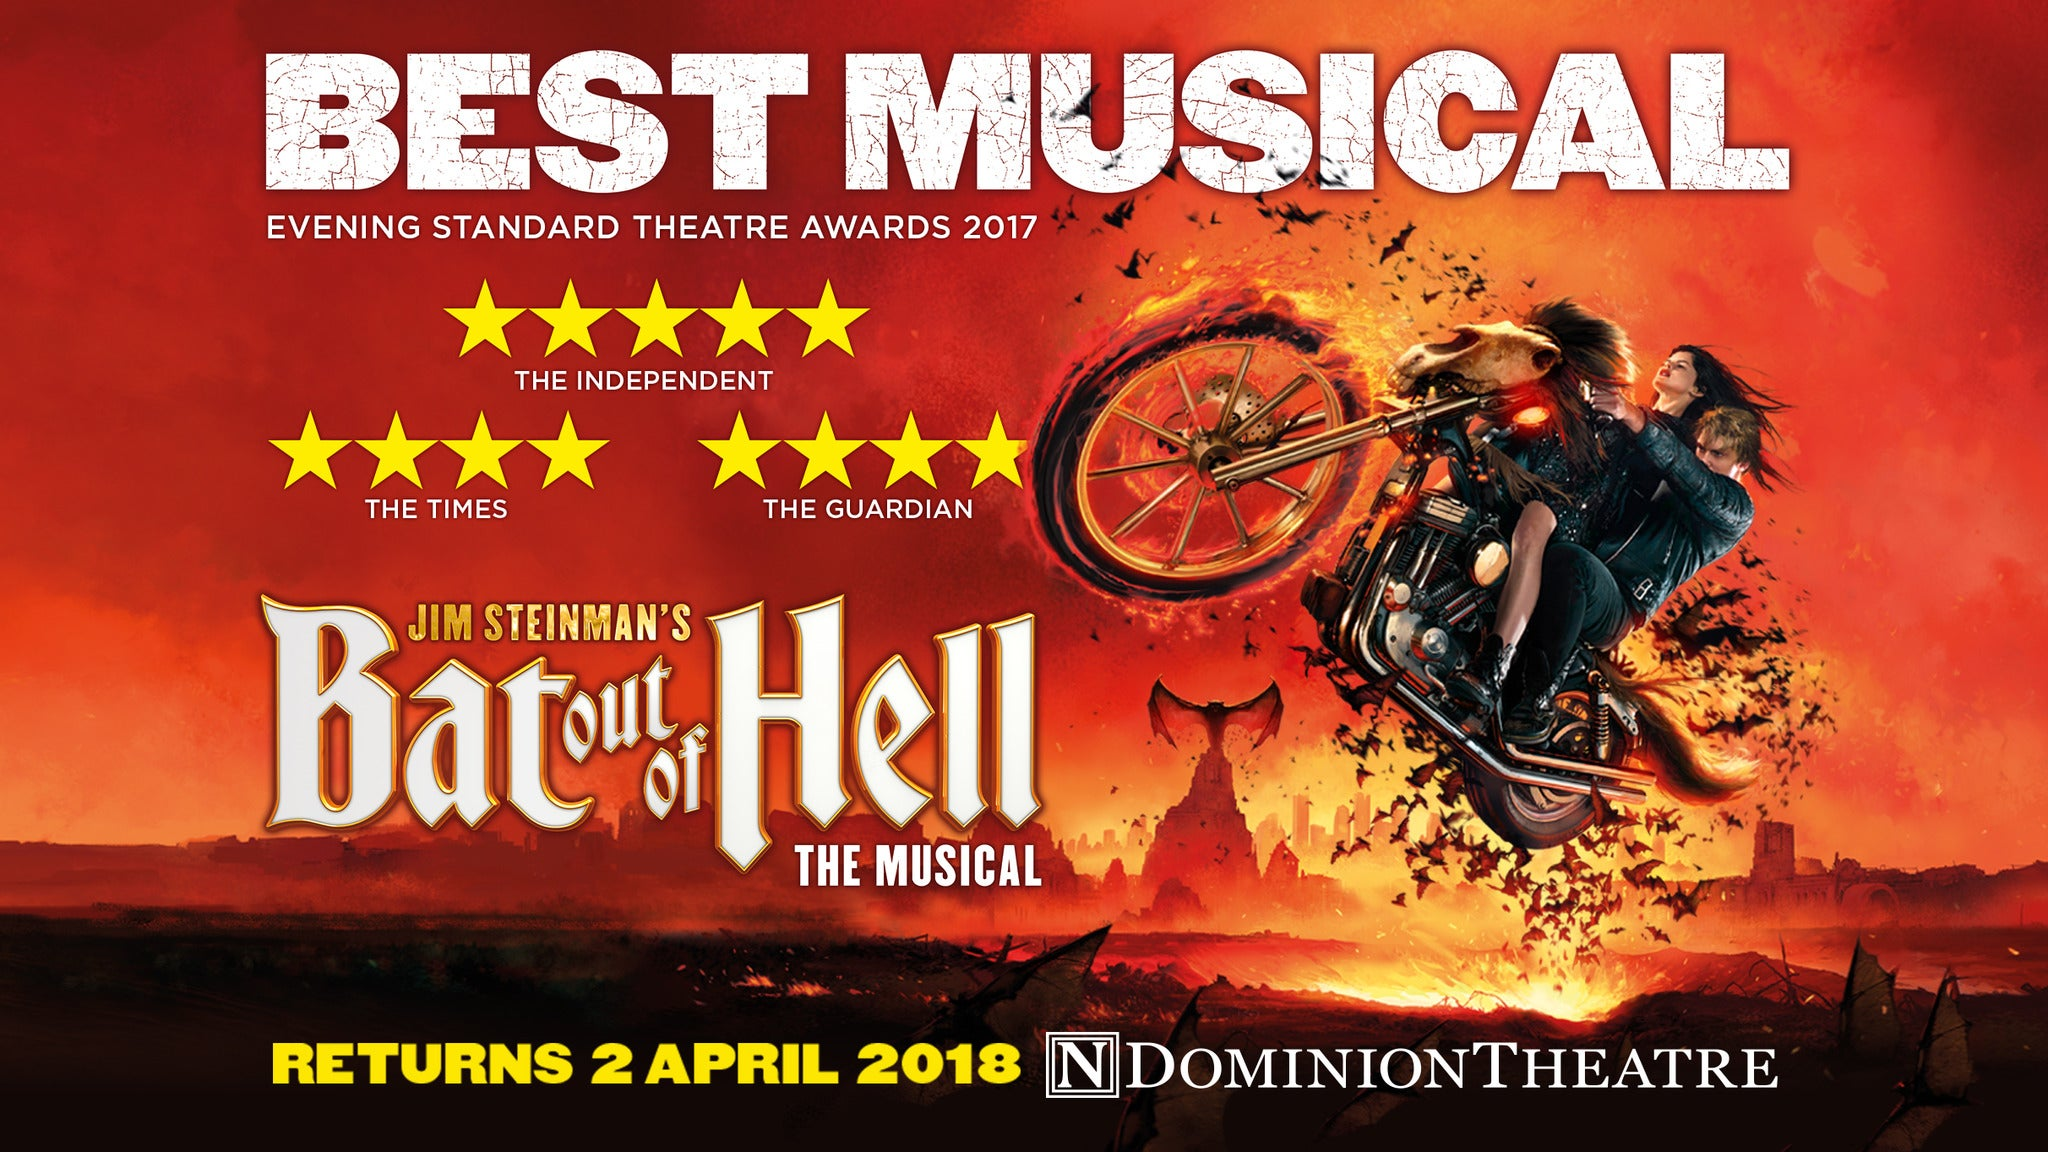 SORRY, THIS EVENT IS NO LONGER ACTIVE<br>BAT OUT OF HELL THE MUSICAL at Buell Theatre - Denver, CO 80204